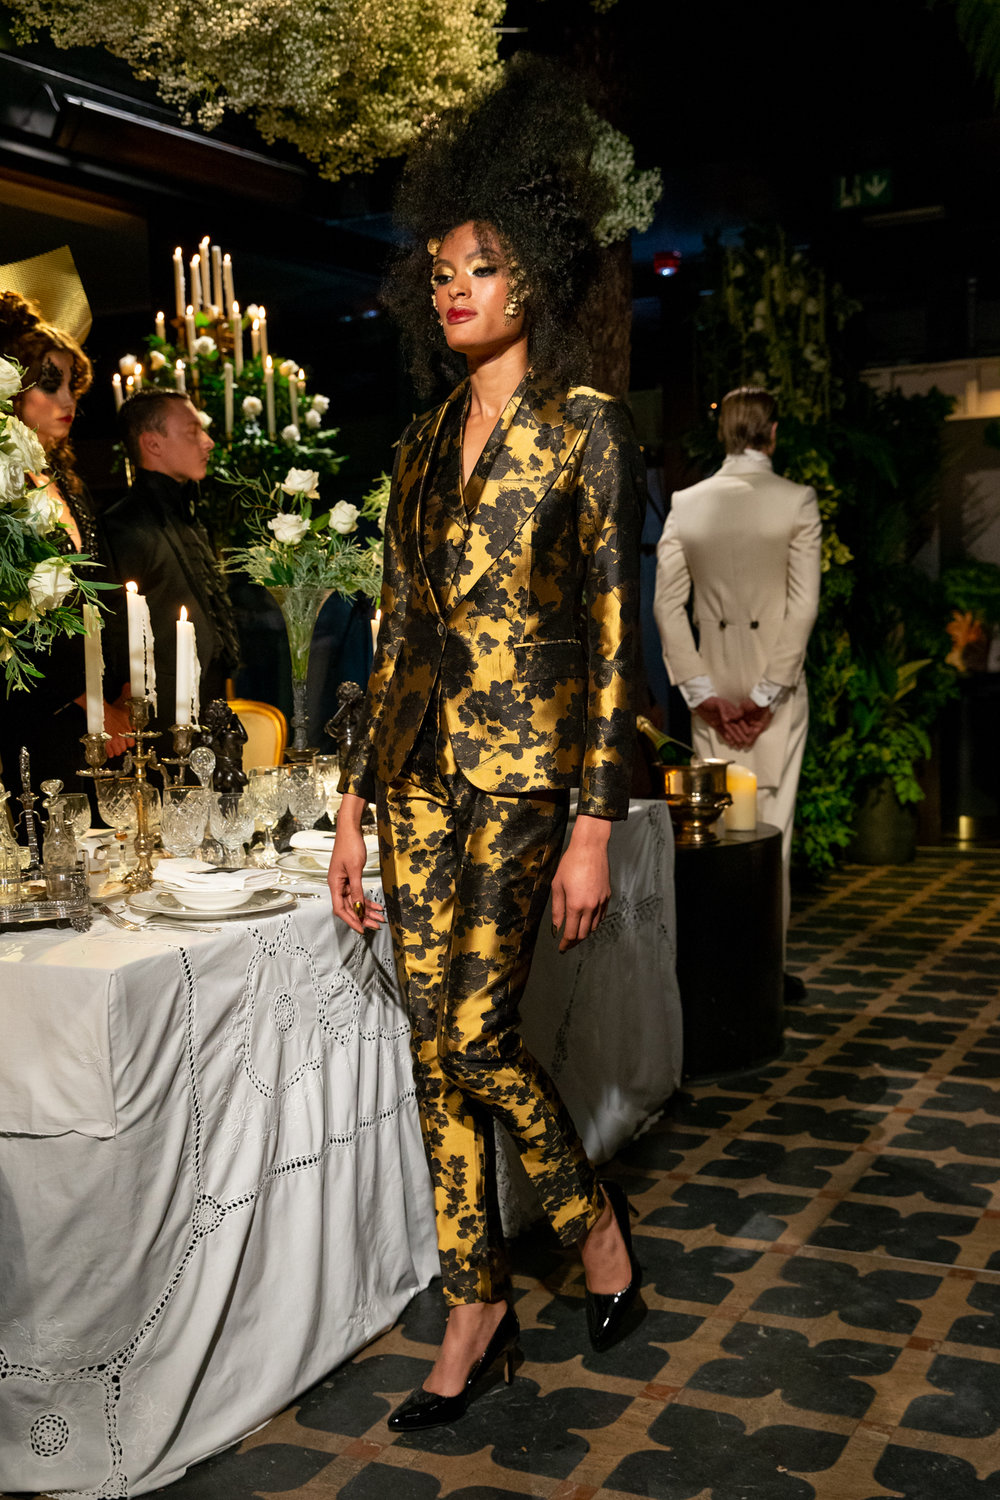 - FEATURED IN THIS LOOK£24202 PIECE SUITTHE AUDREY, GOLDEN LEAF SILK JAQUARDAVAILABLE THROUGH MADE-TO-ORDER£650WAISTCOAT THE AUDREY, GOLDEN LEAF SILK JAQUARDAVAILABLE THROUGH MADE-TO-ORDER__________________________BOOK A MADE-TO-ORDER APPOINTMENT